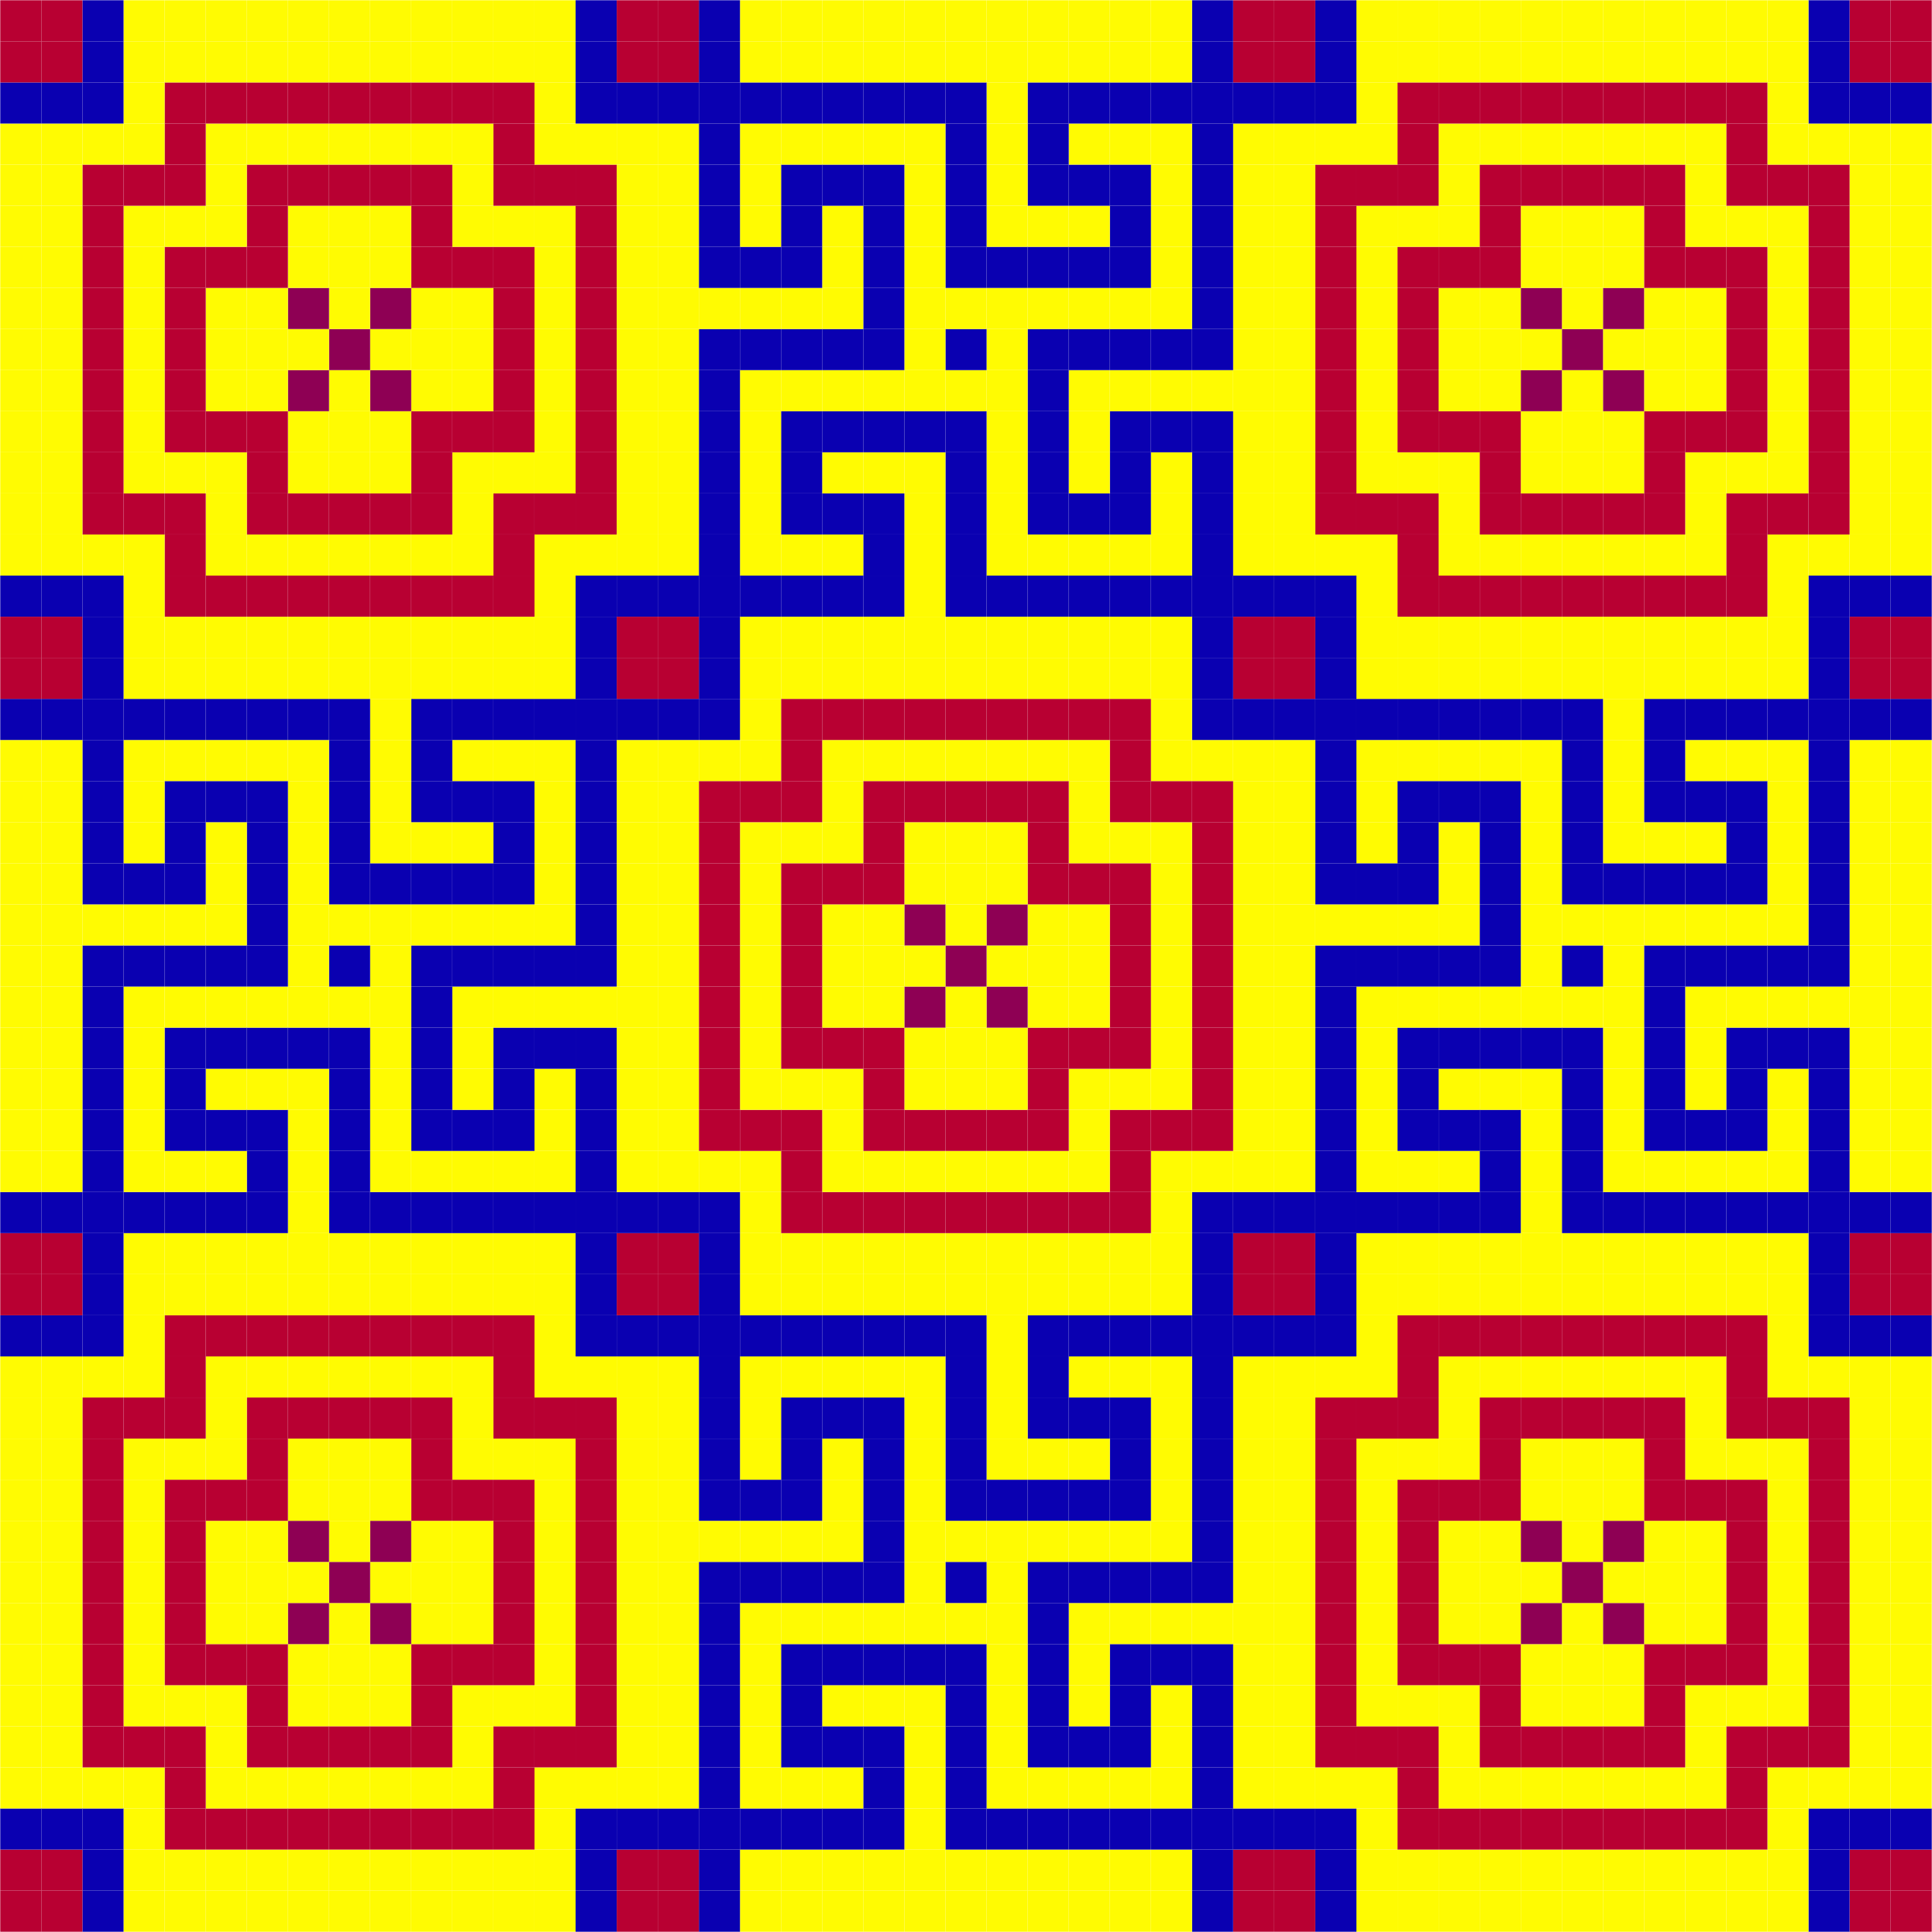 Seamless Tiled Geometric Mosaic Pattern By Karen Arnold Without Stroke by GDJ